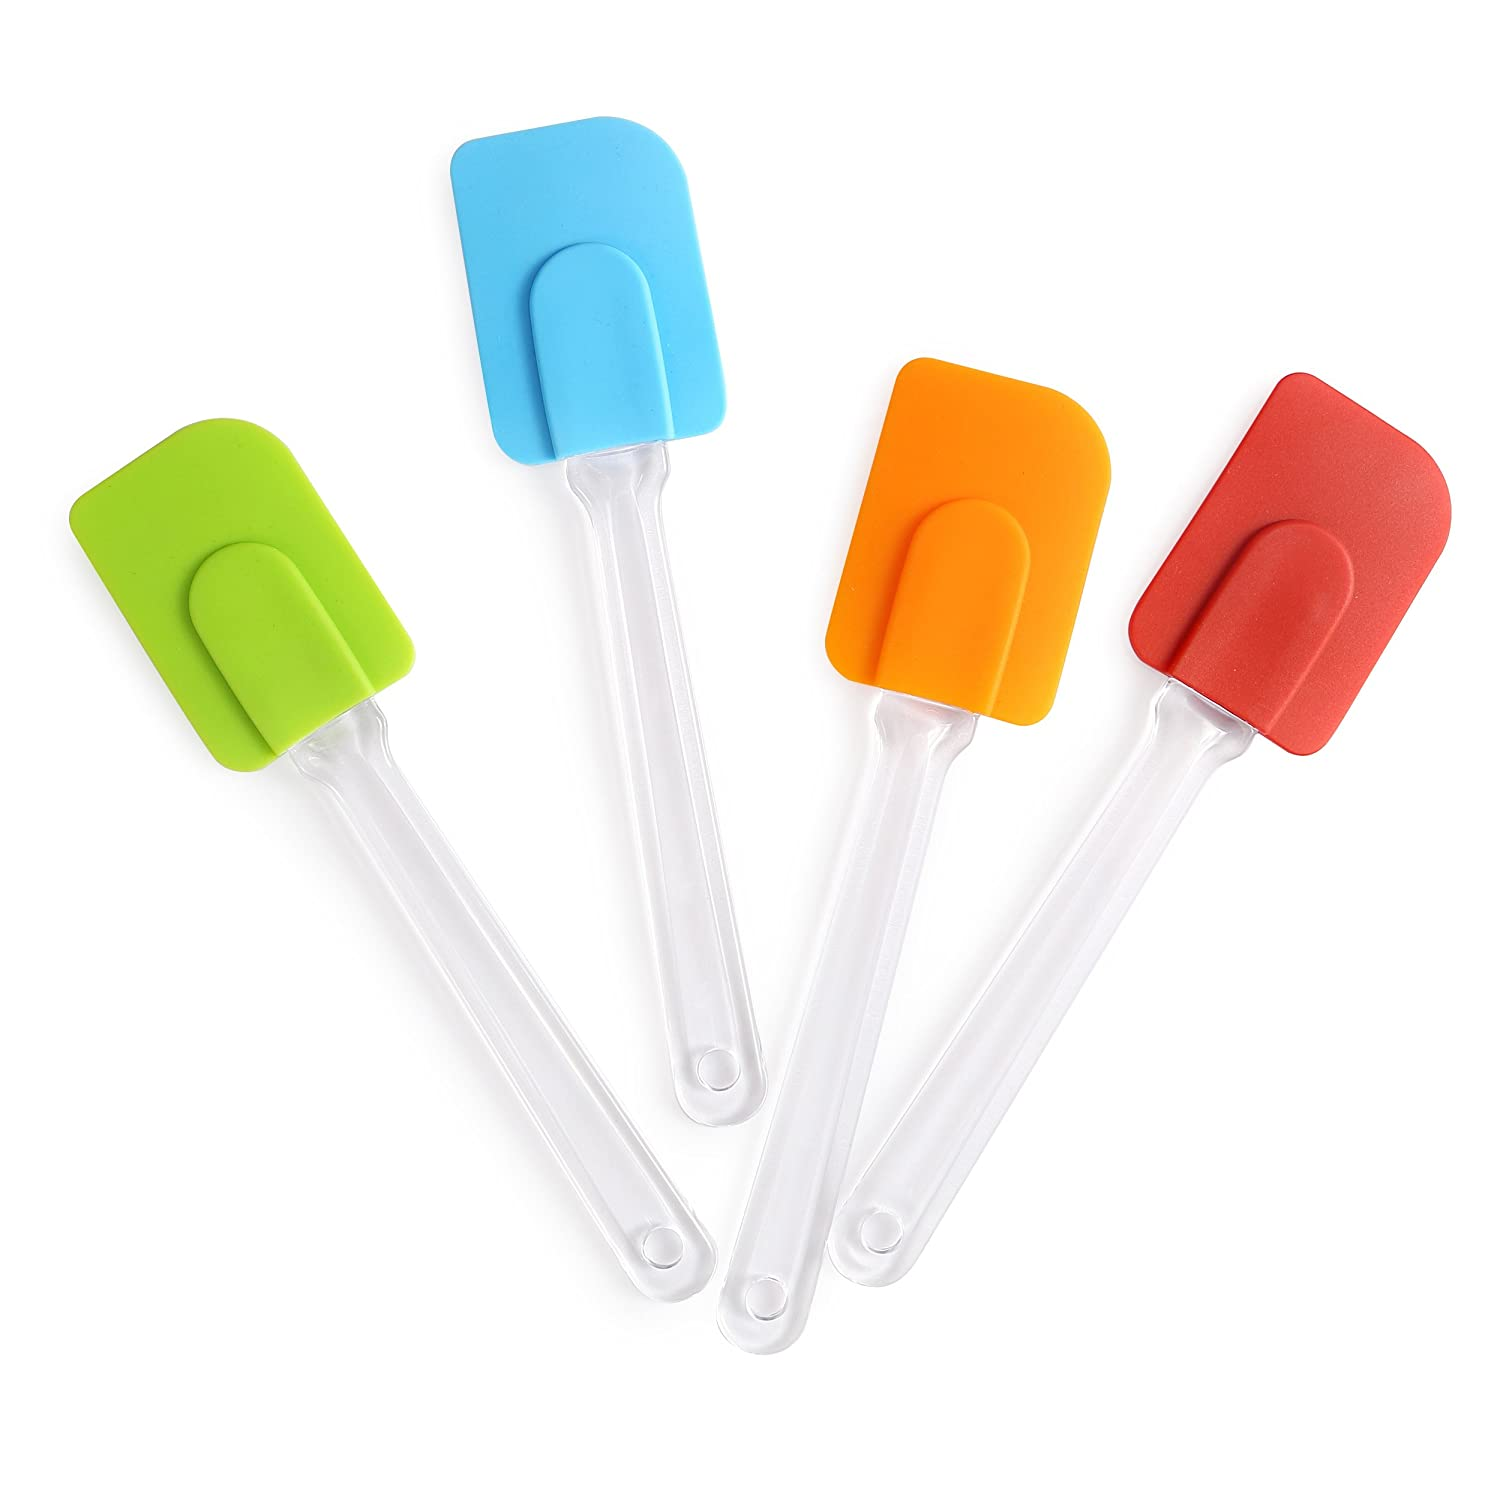 Harima - 4 Piece Set of Flexible Silicone Rubber Spatulas Turner Spoon Heat Resistant Non Stick Baking Spatula Kitchen Utensils